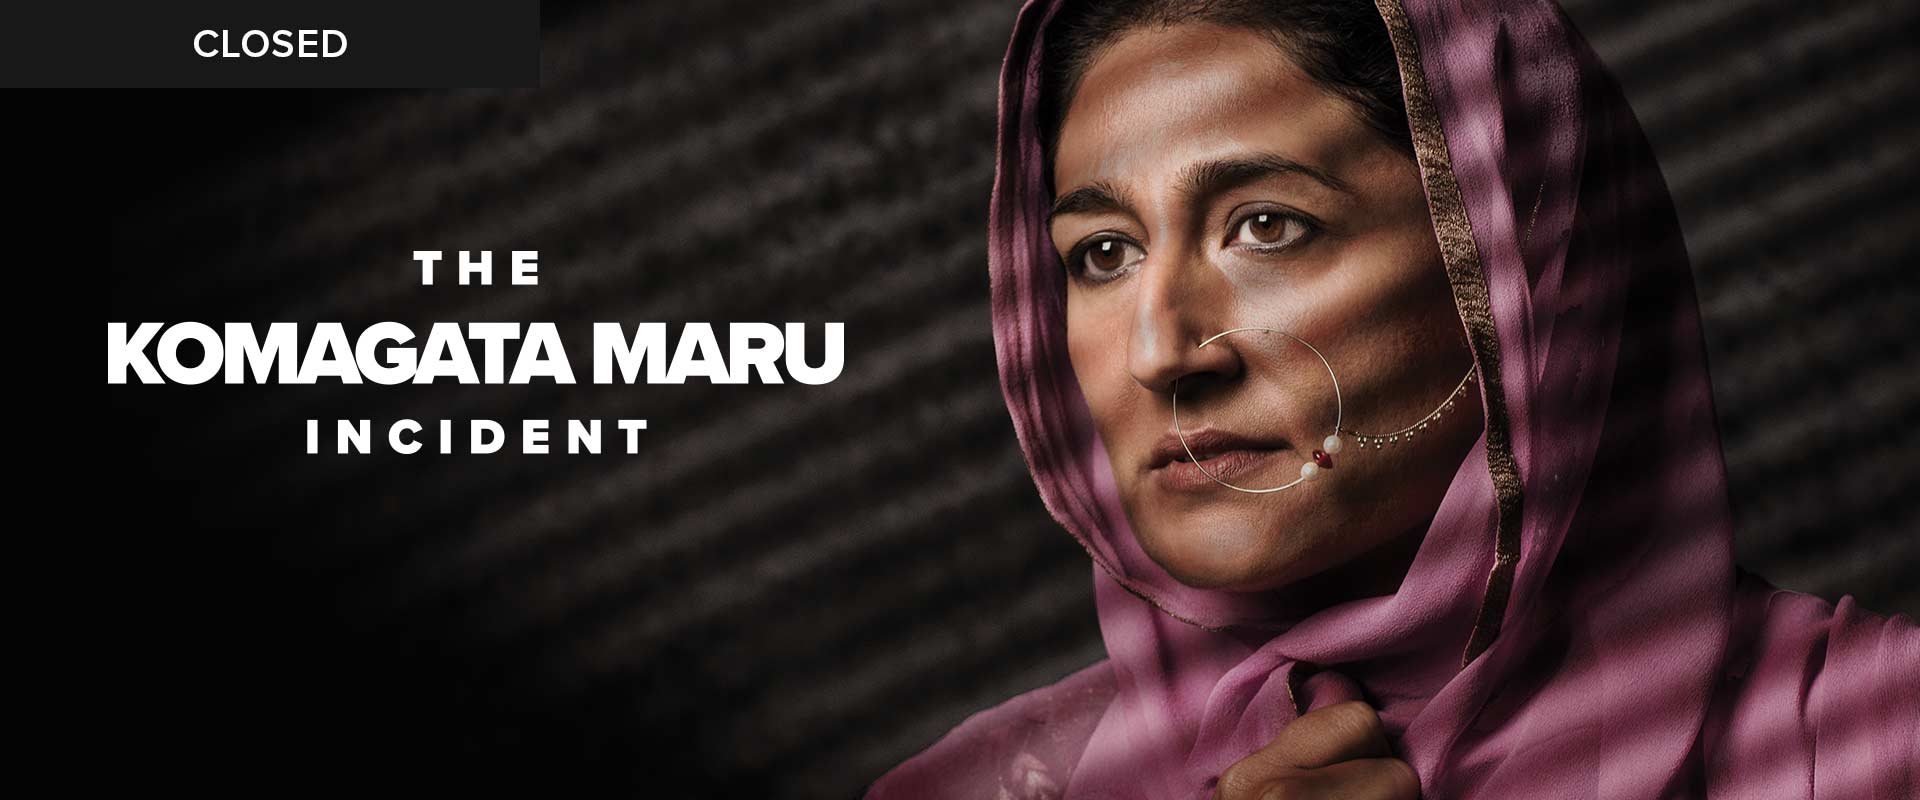 Publicity image from The Komagata Maru Incident featuring Kiran Ahluwalia